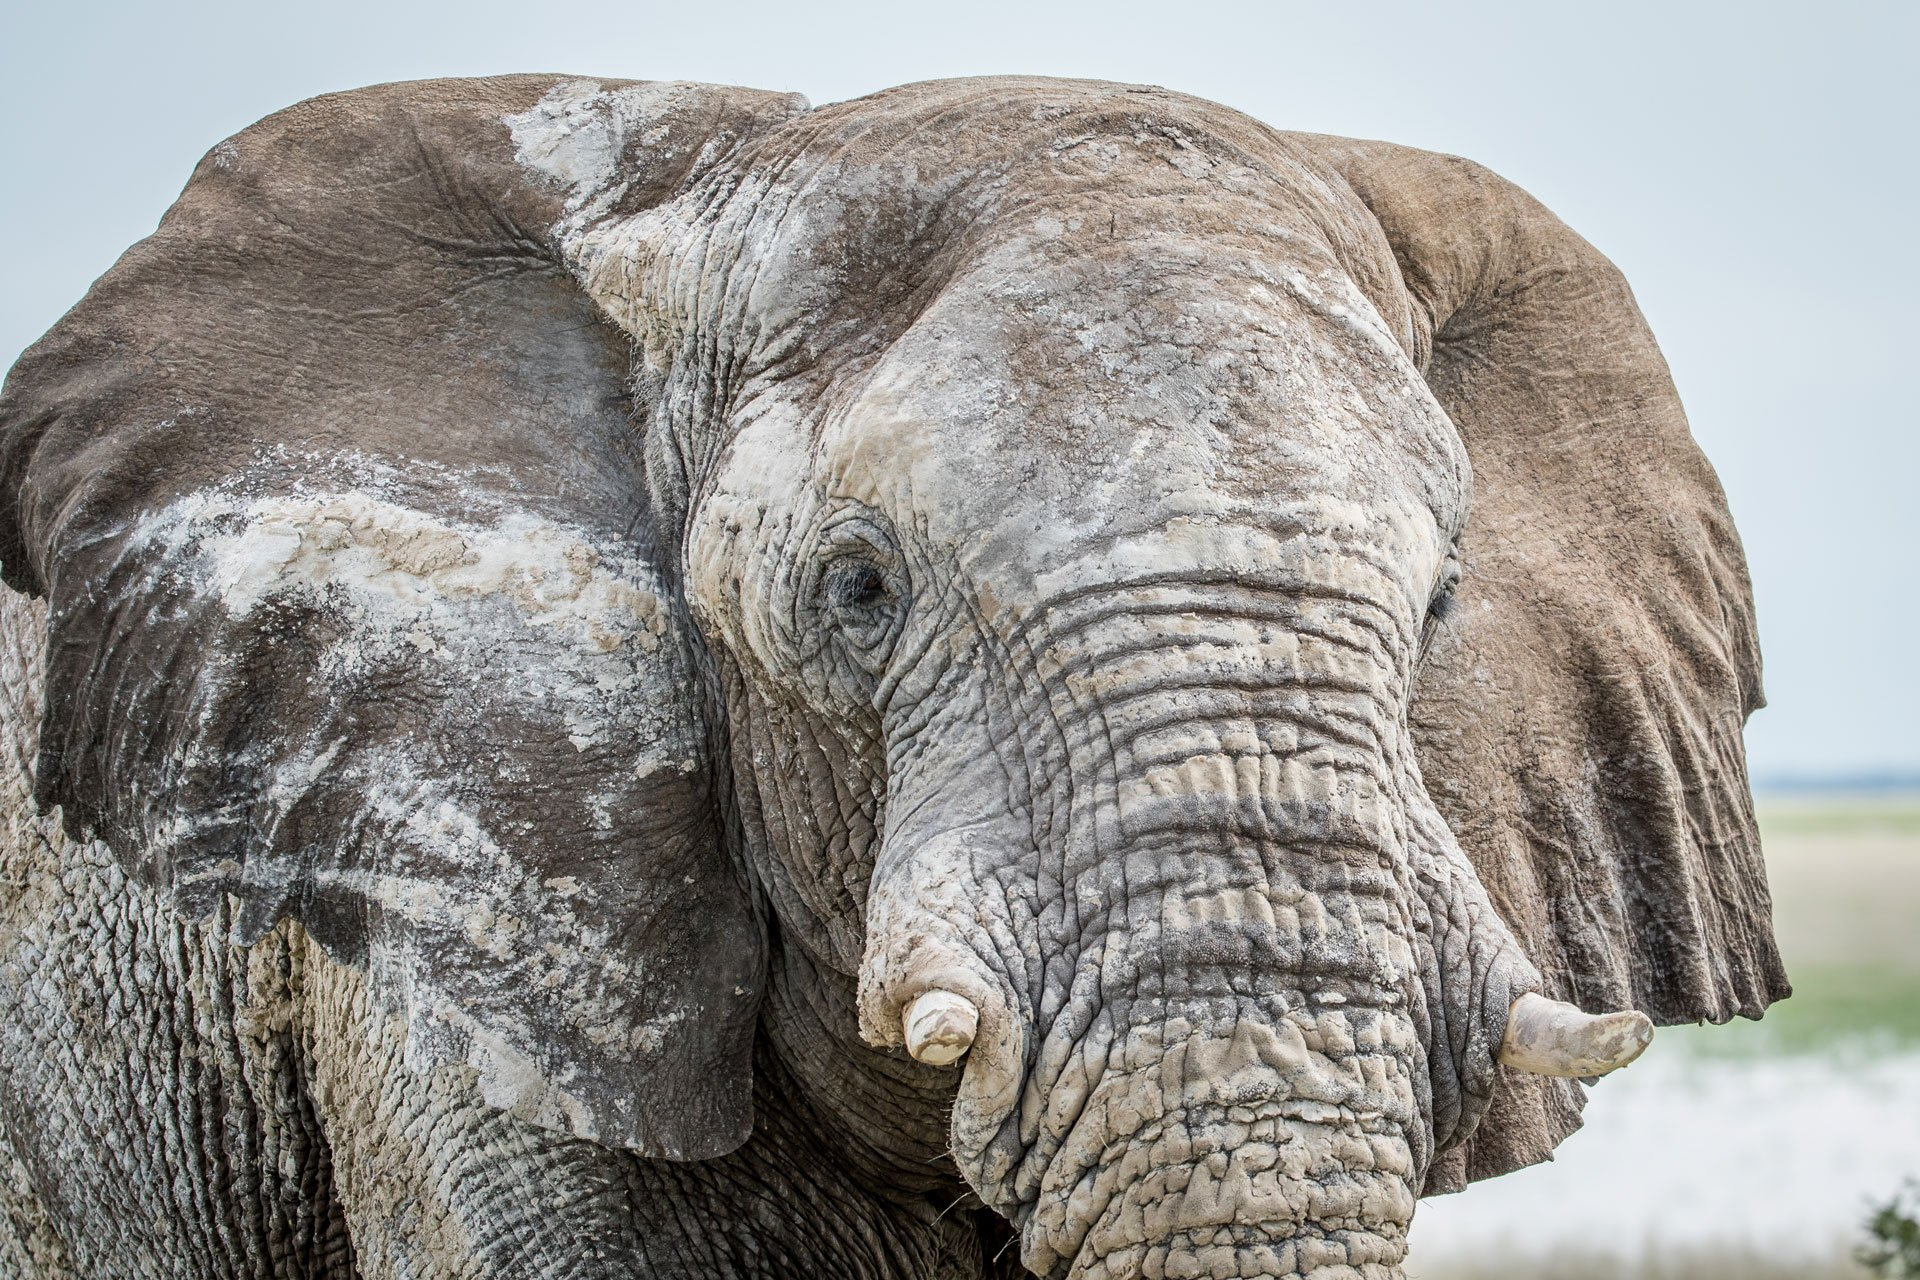 close up of an elephant bull H3N6XWG